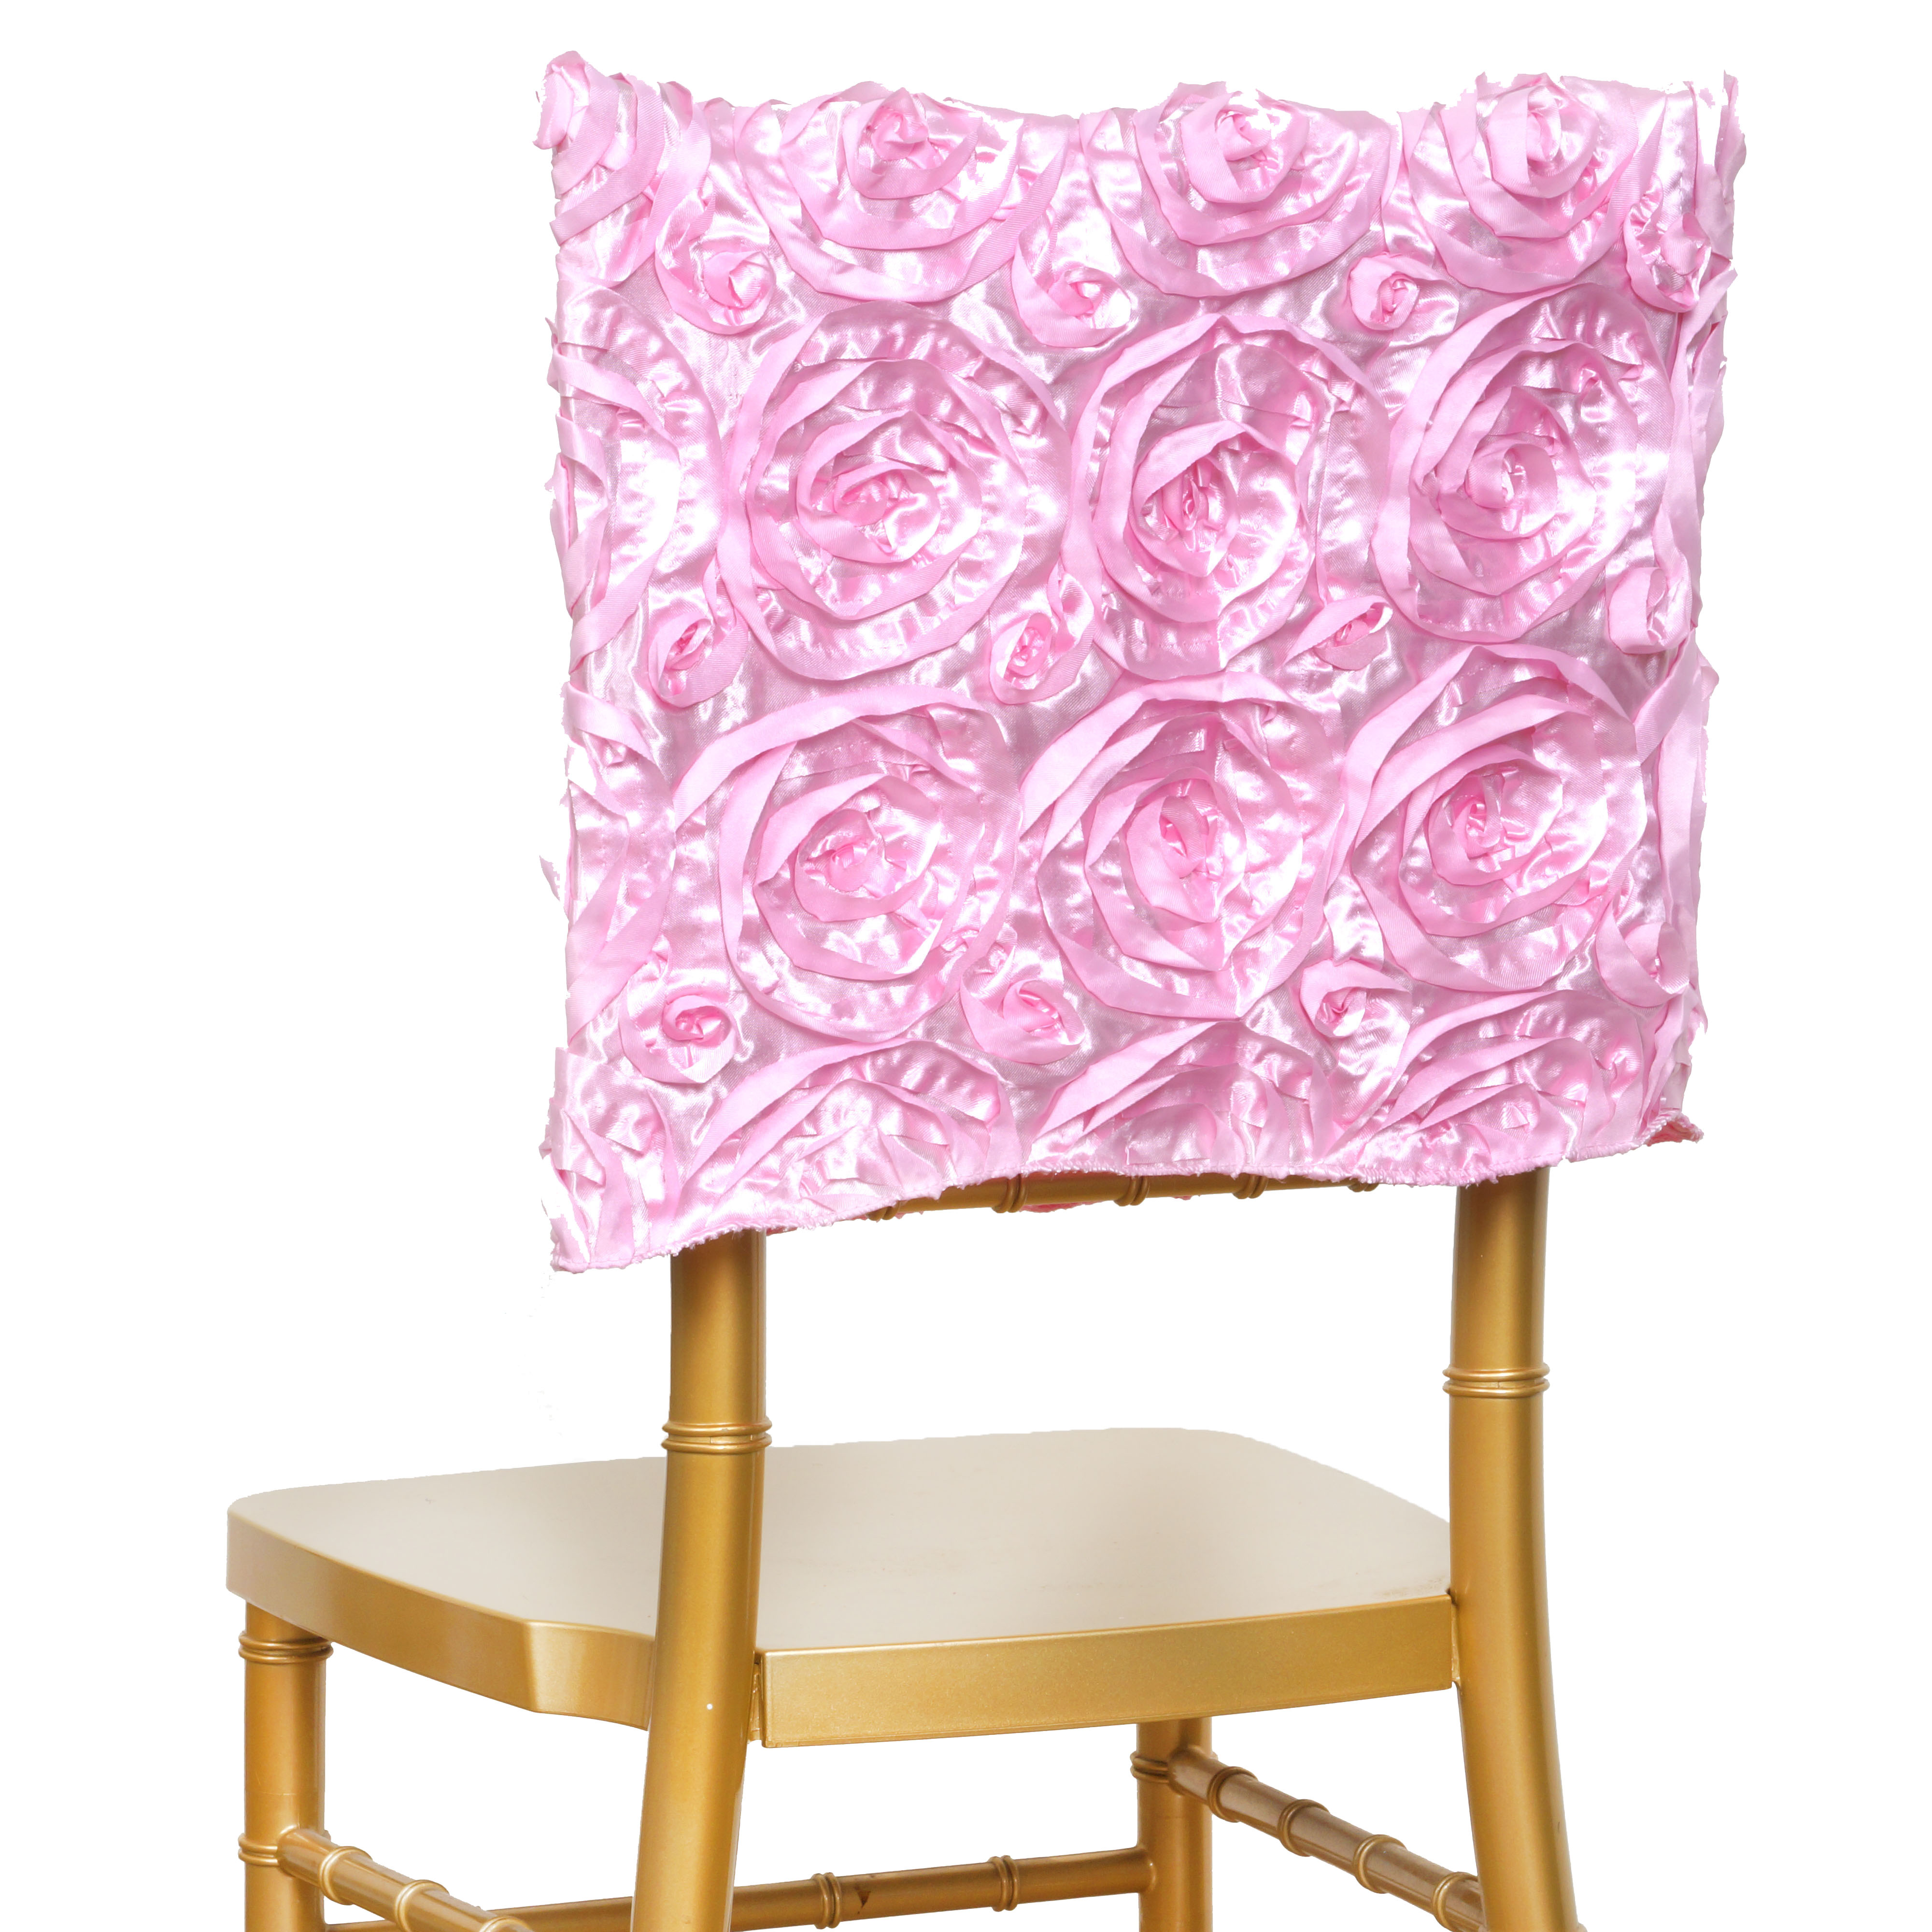 6 Pcs Chair Covers Square Top Caps With Ribbon Roses Party